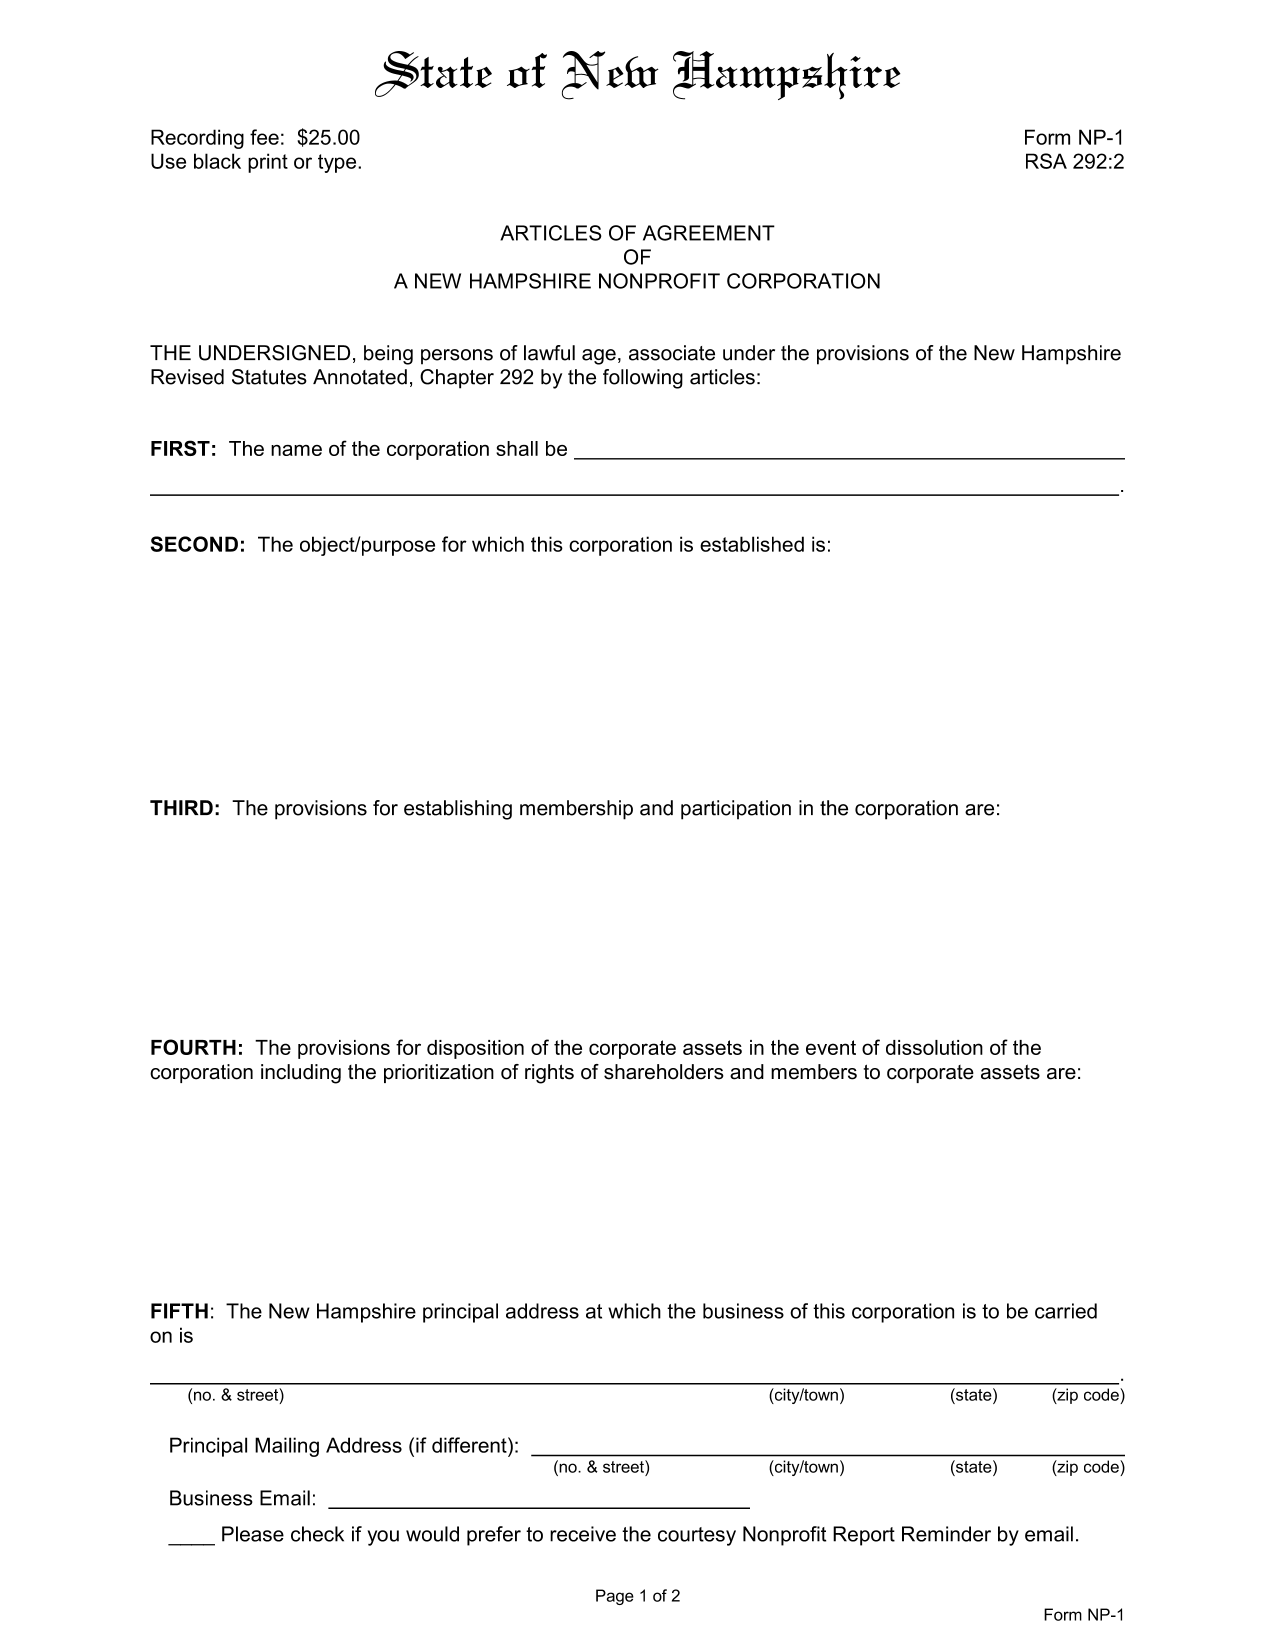 Articles of Agreement of a New Hampshire Nonprofit Corporation